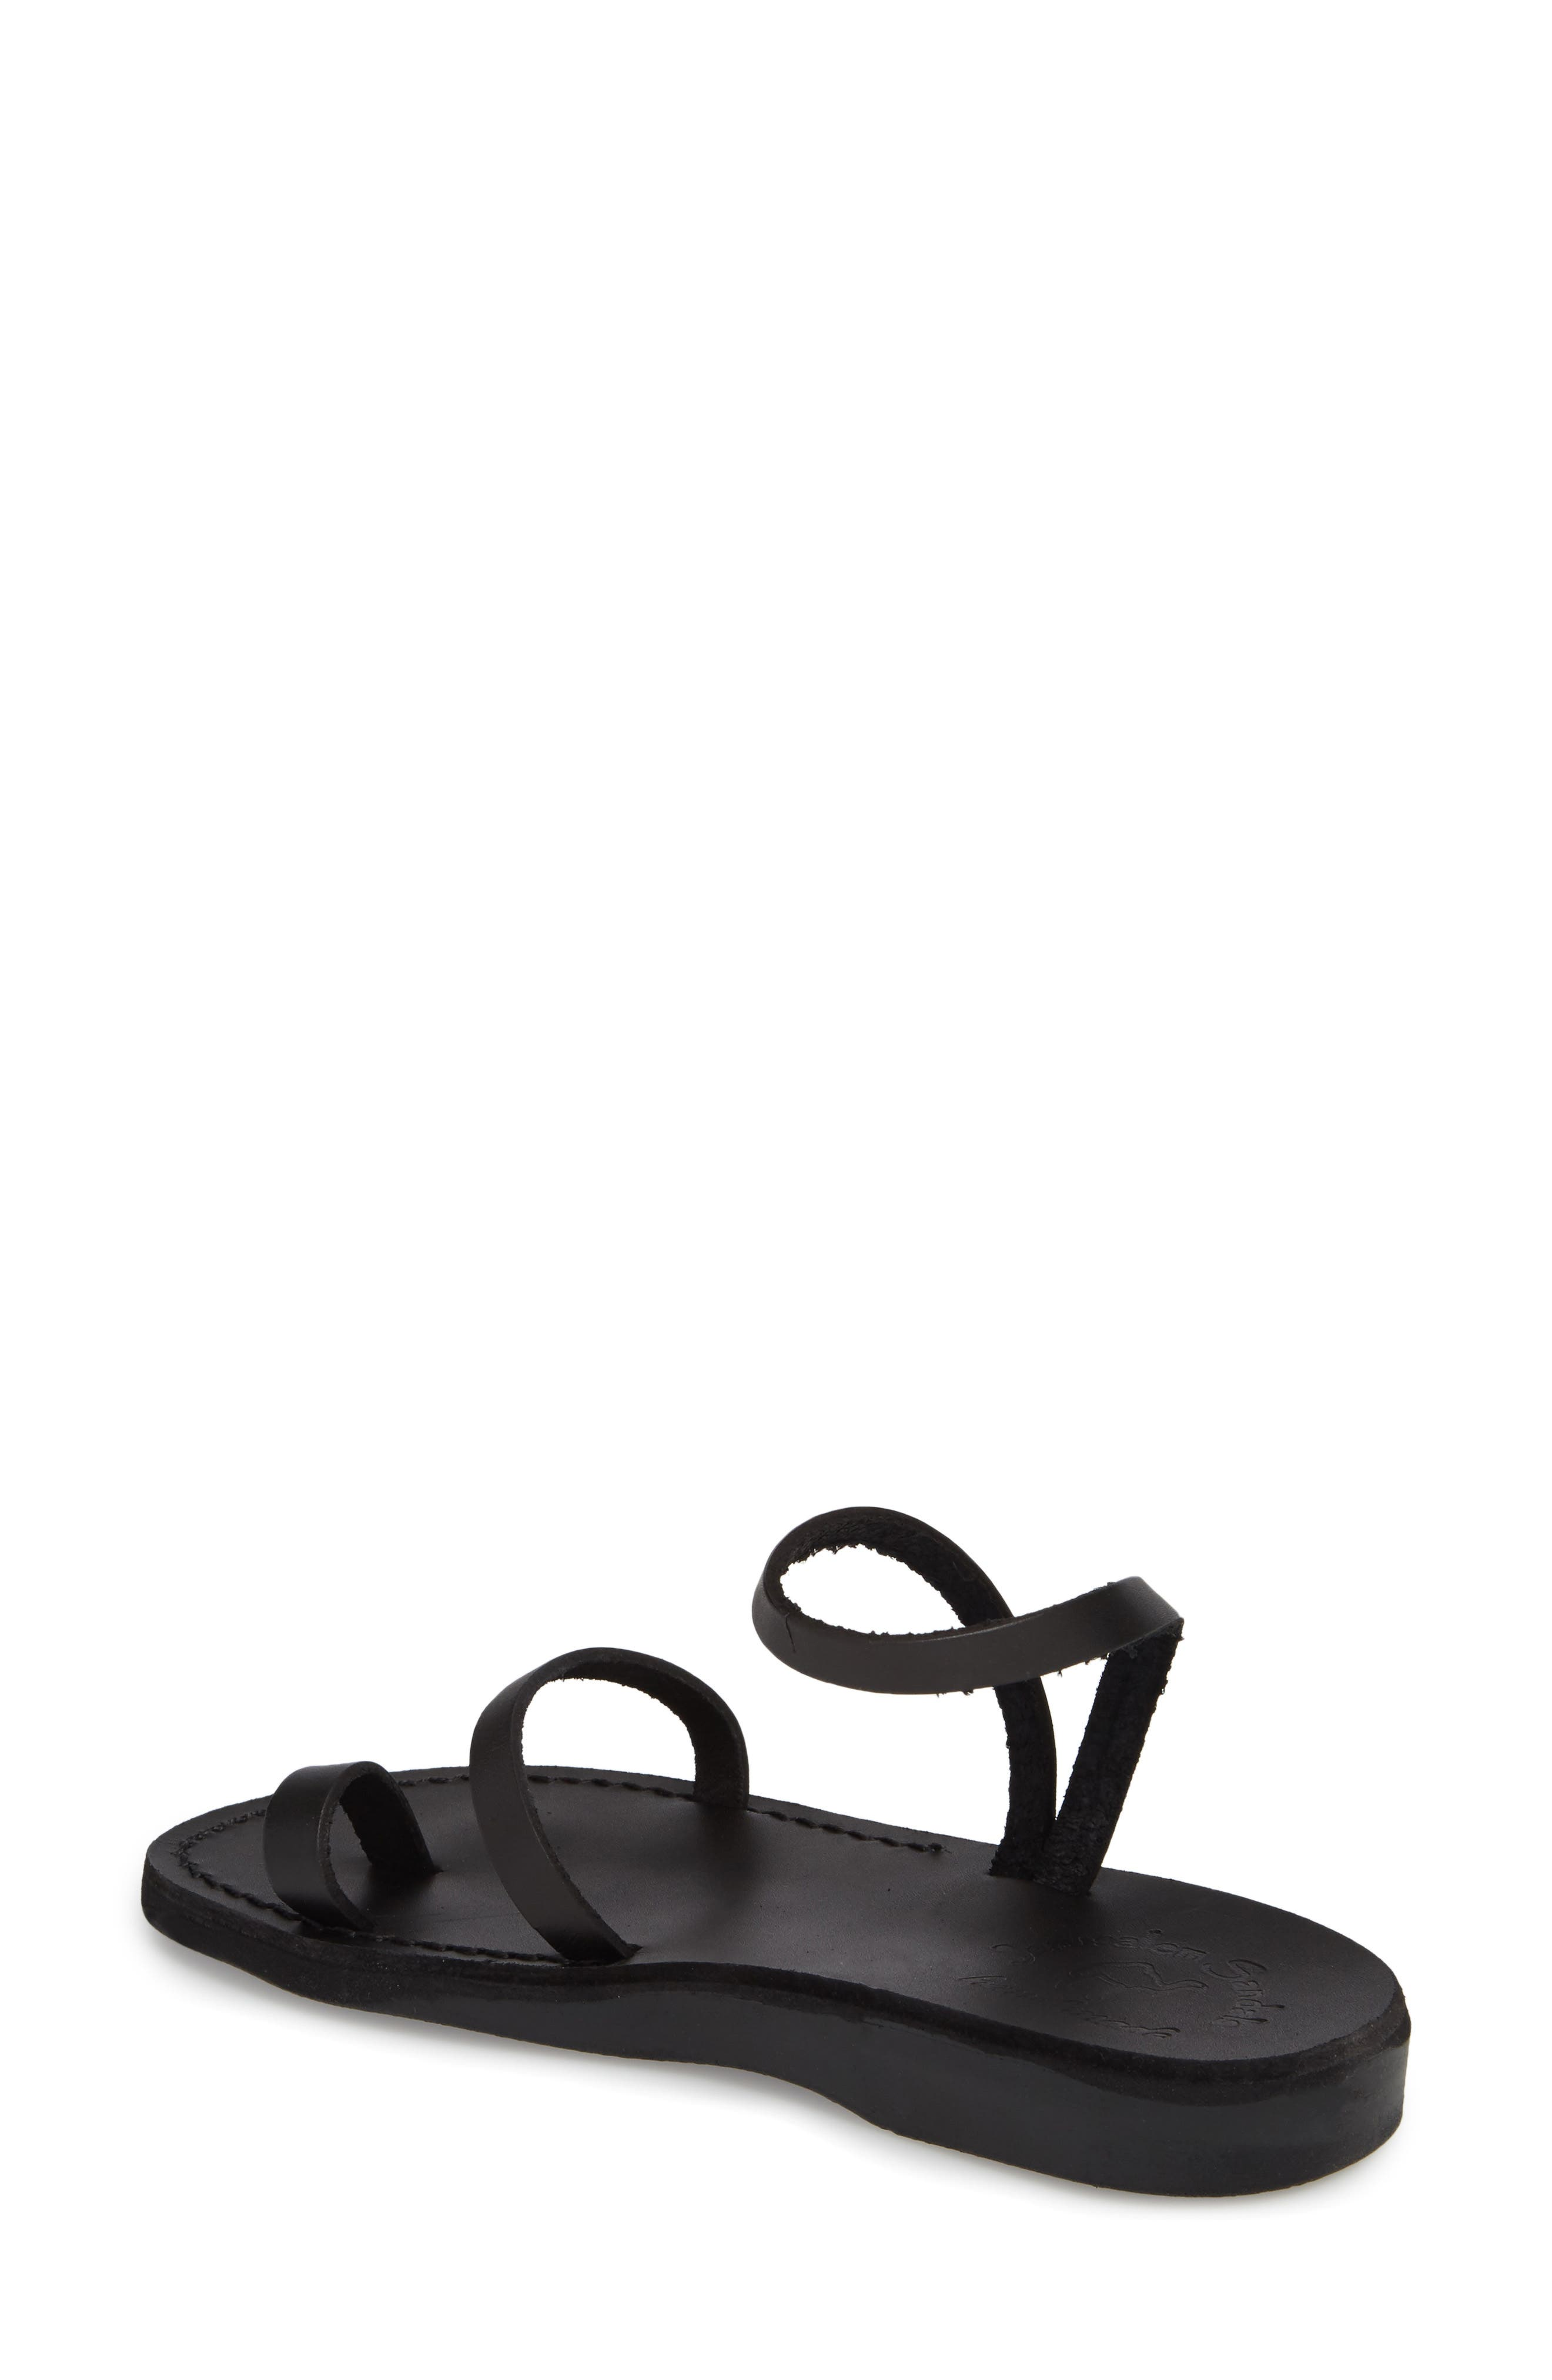 Ella Sandal,                             Alternate thumbnail 2, color,                             BLACK LEATHER